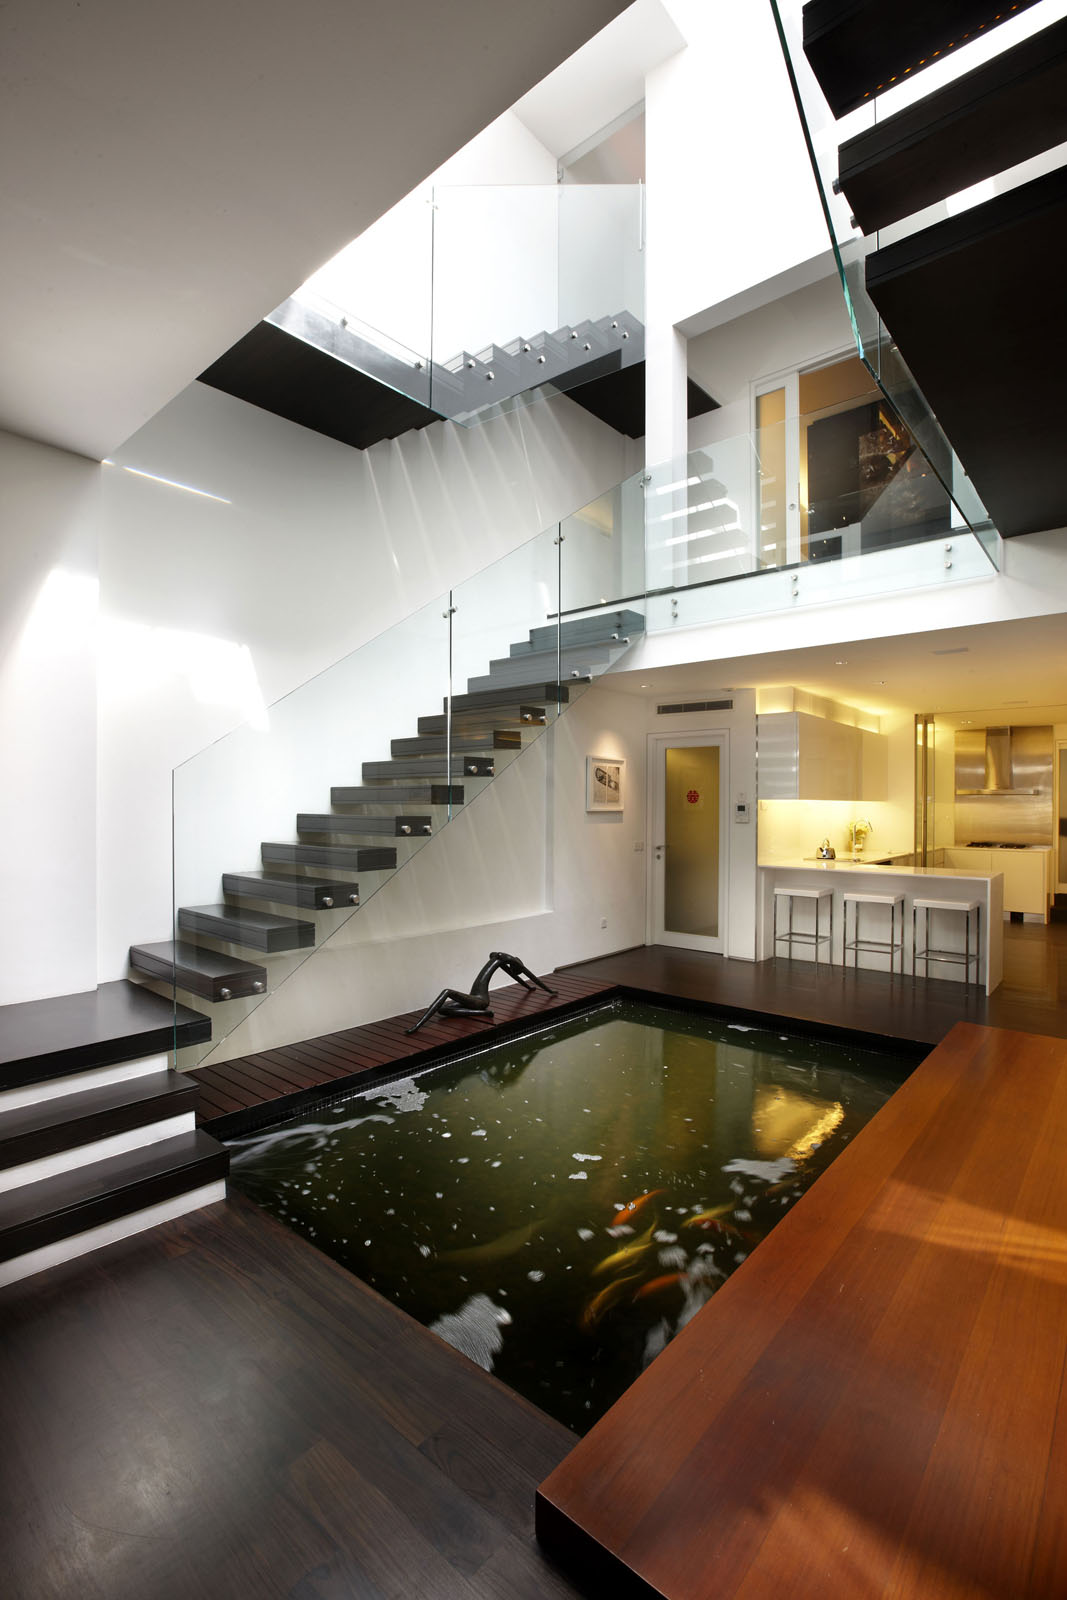 Pre War Shophouse In Singapore Transformed Into Luxury Modern Home IDesignArch Interior